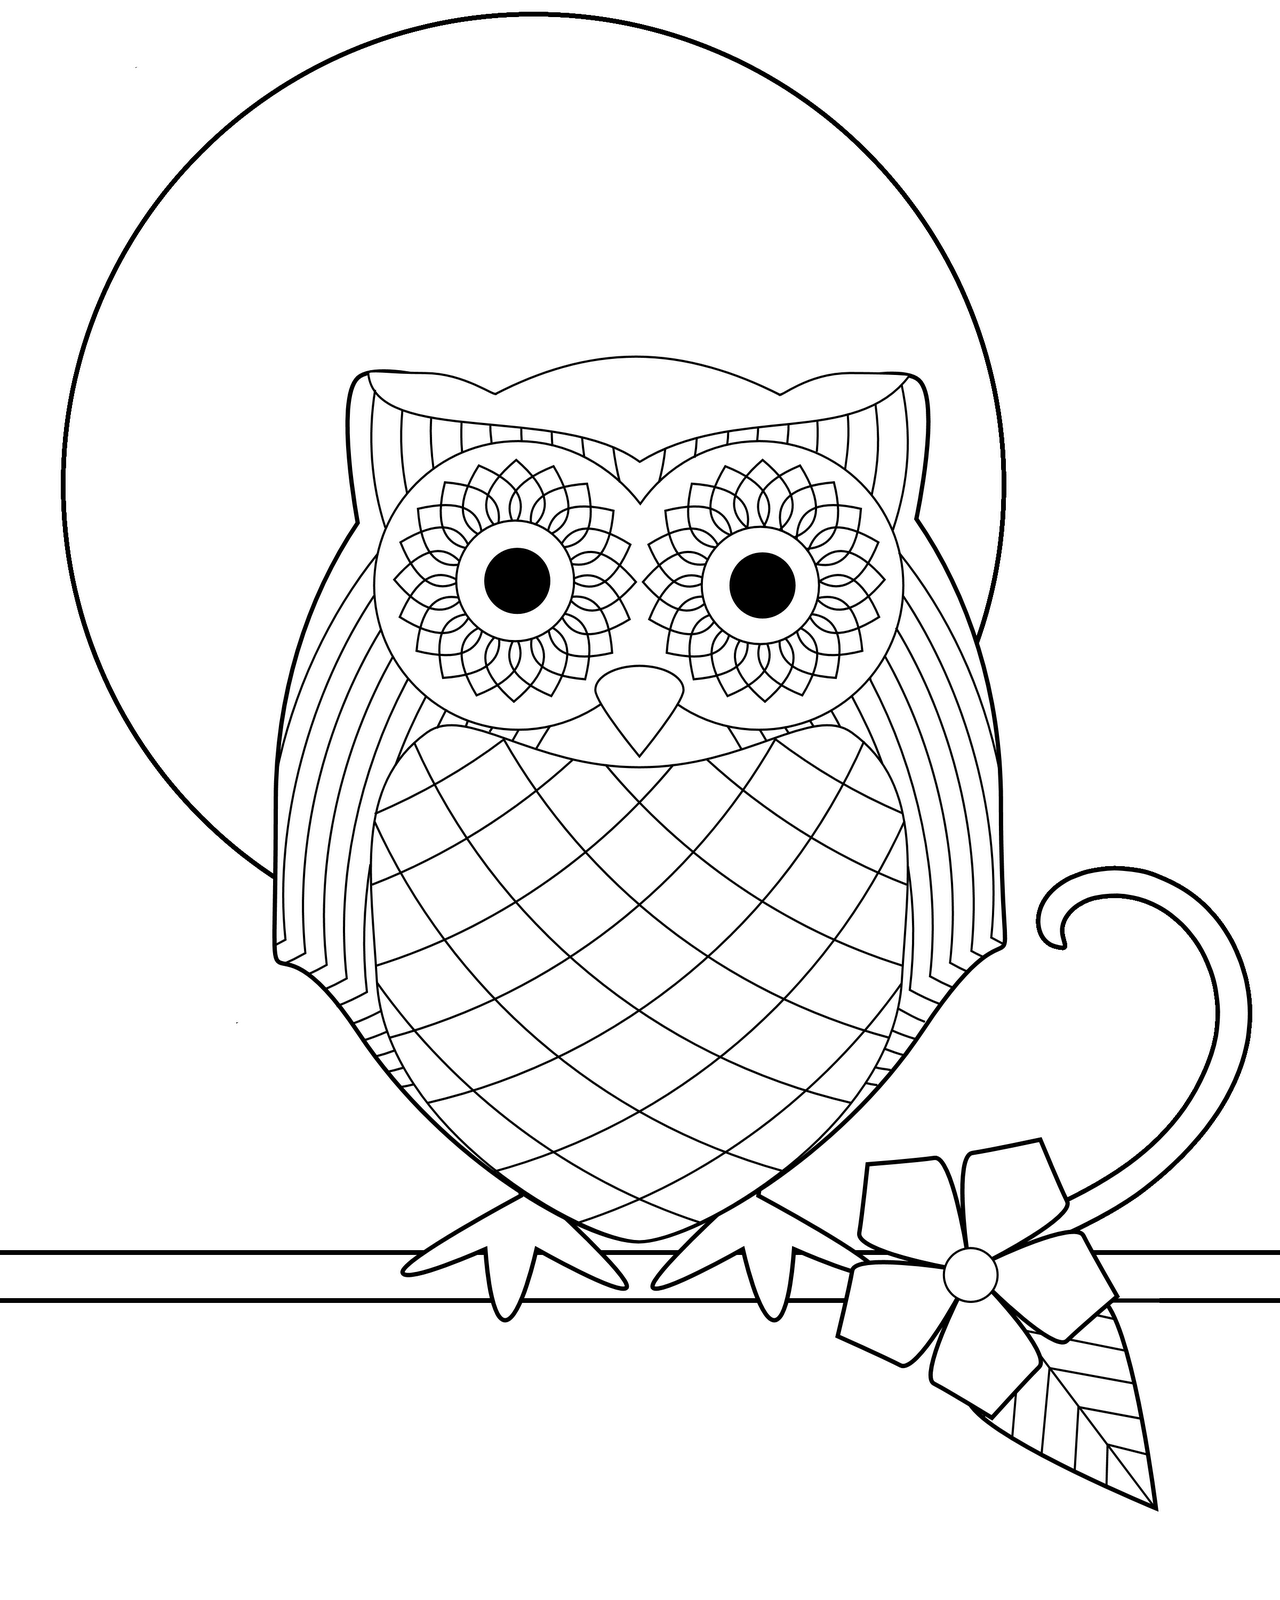 free owl printables 10 difficult owl coloring page for adults free owl printables